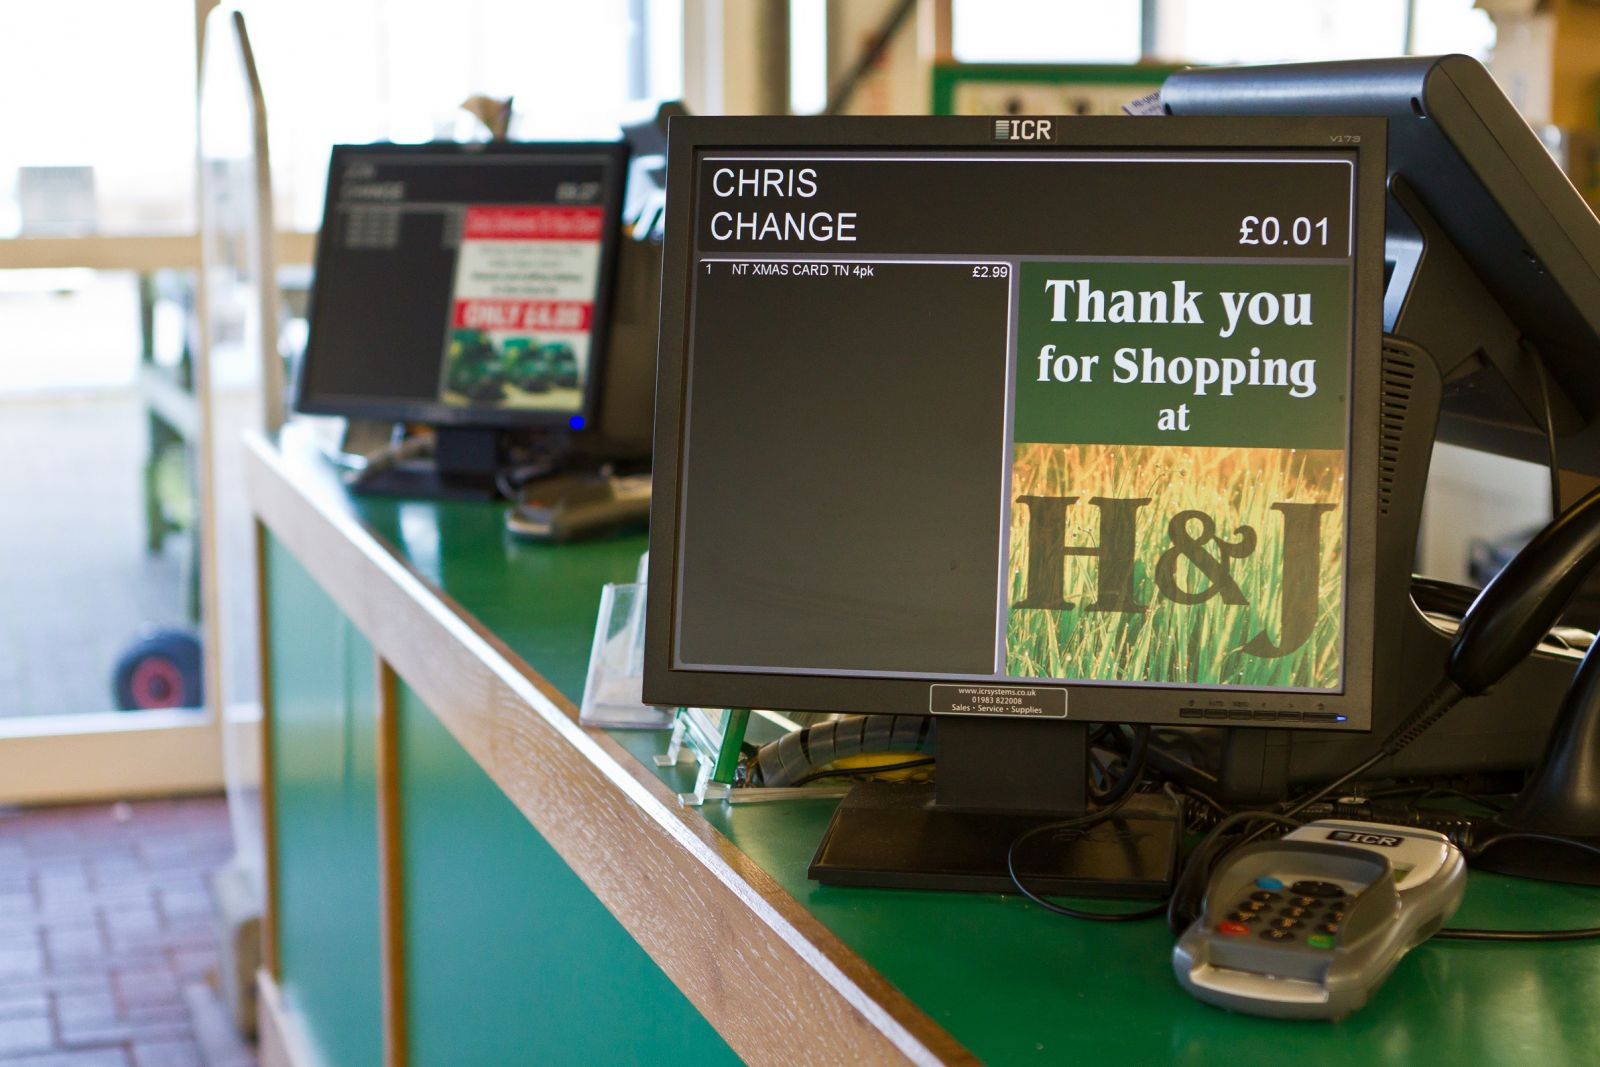 Large customer display with targetted advertising and messages